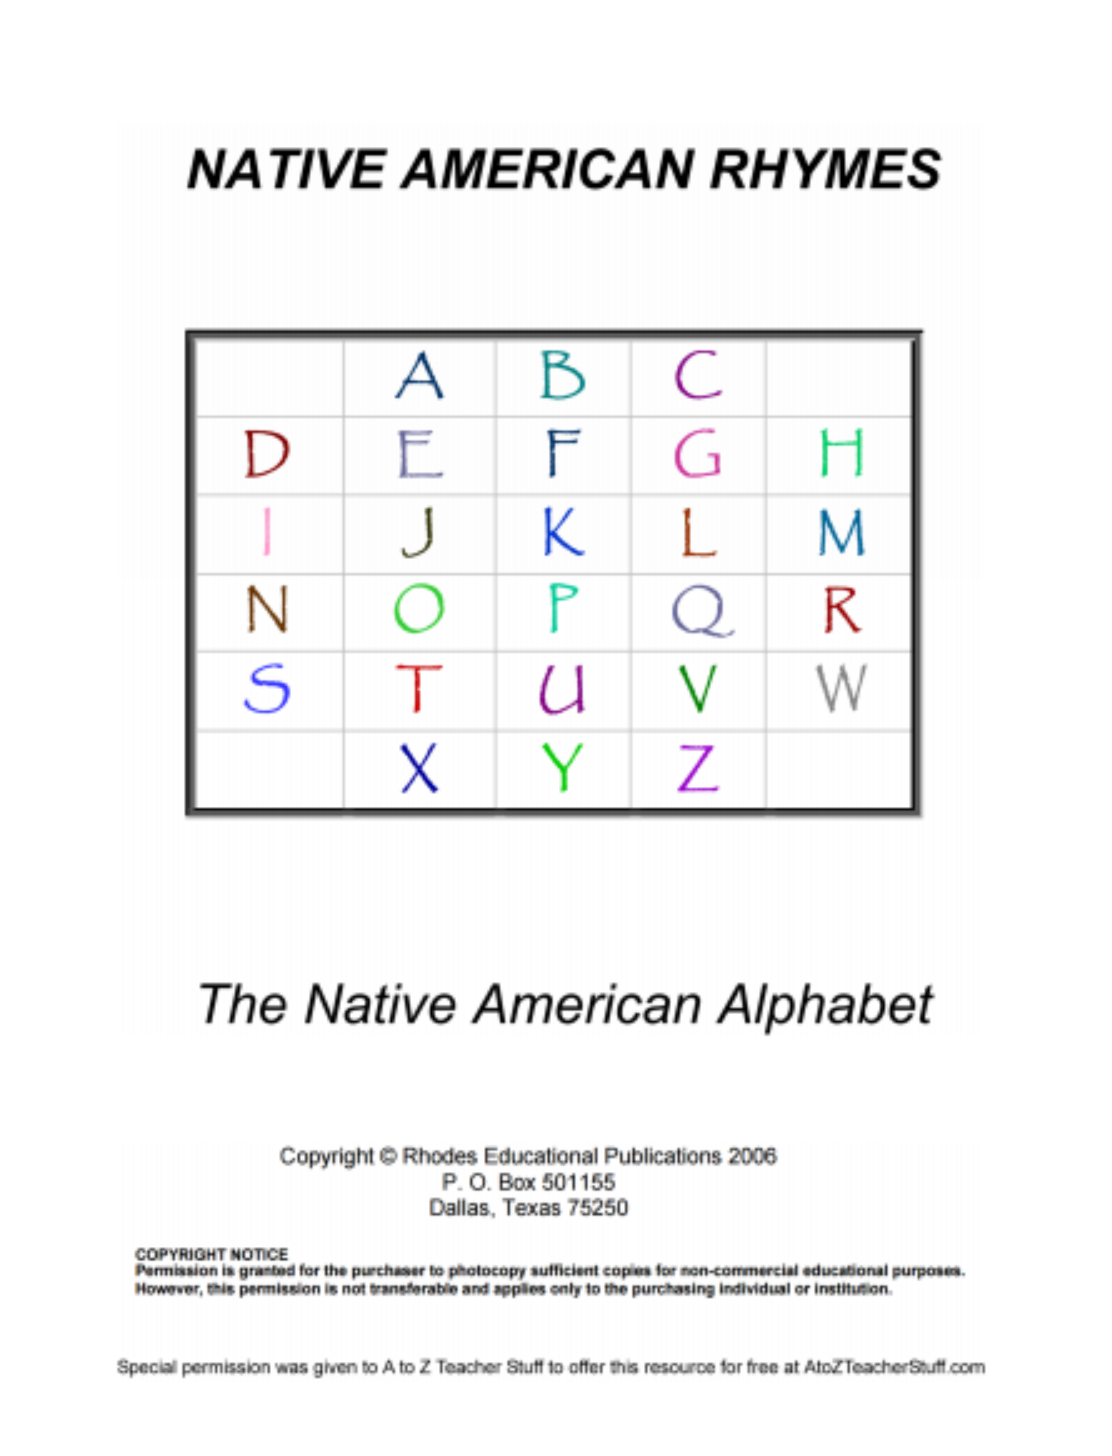 Native American Rhymes Printable Resources  A To Z Teacher Stuff Throughout Native American Worksheets